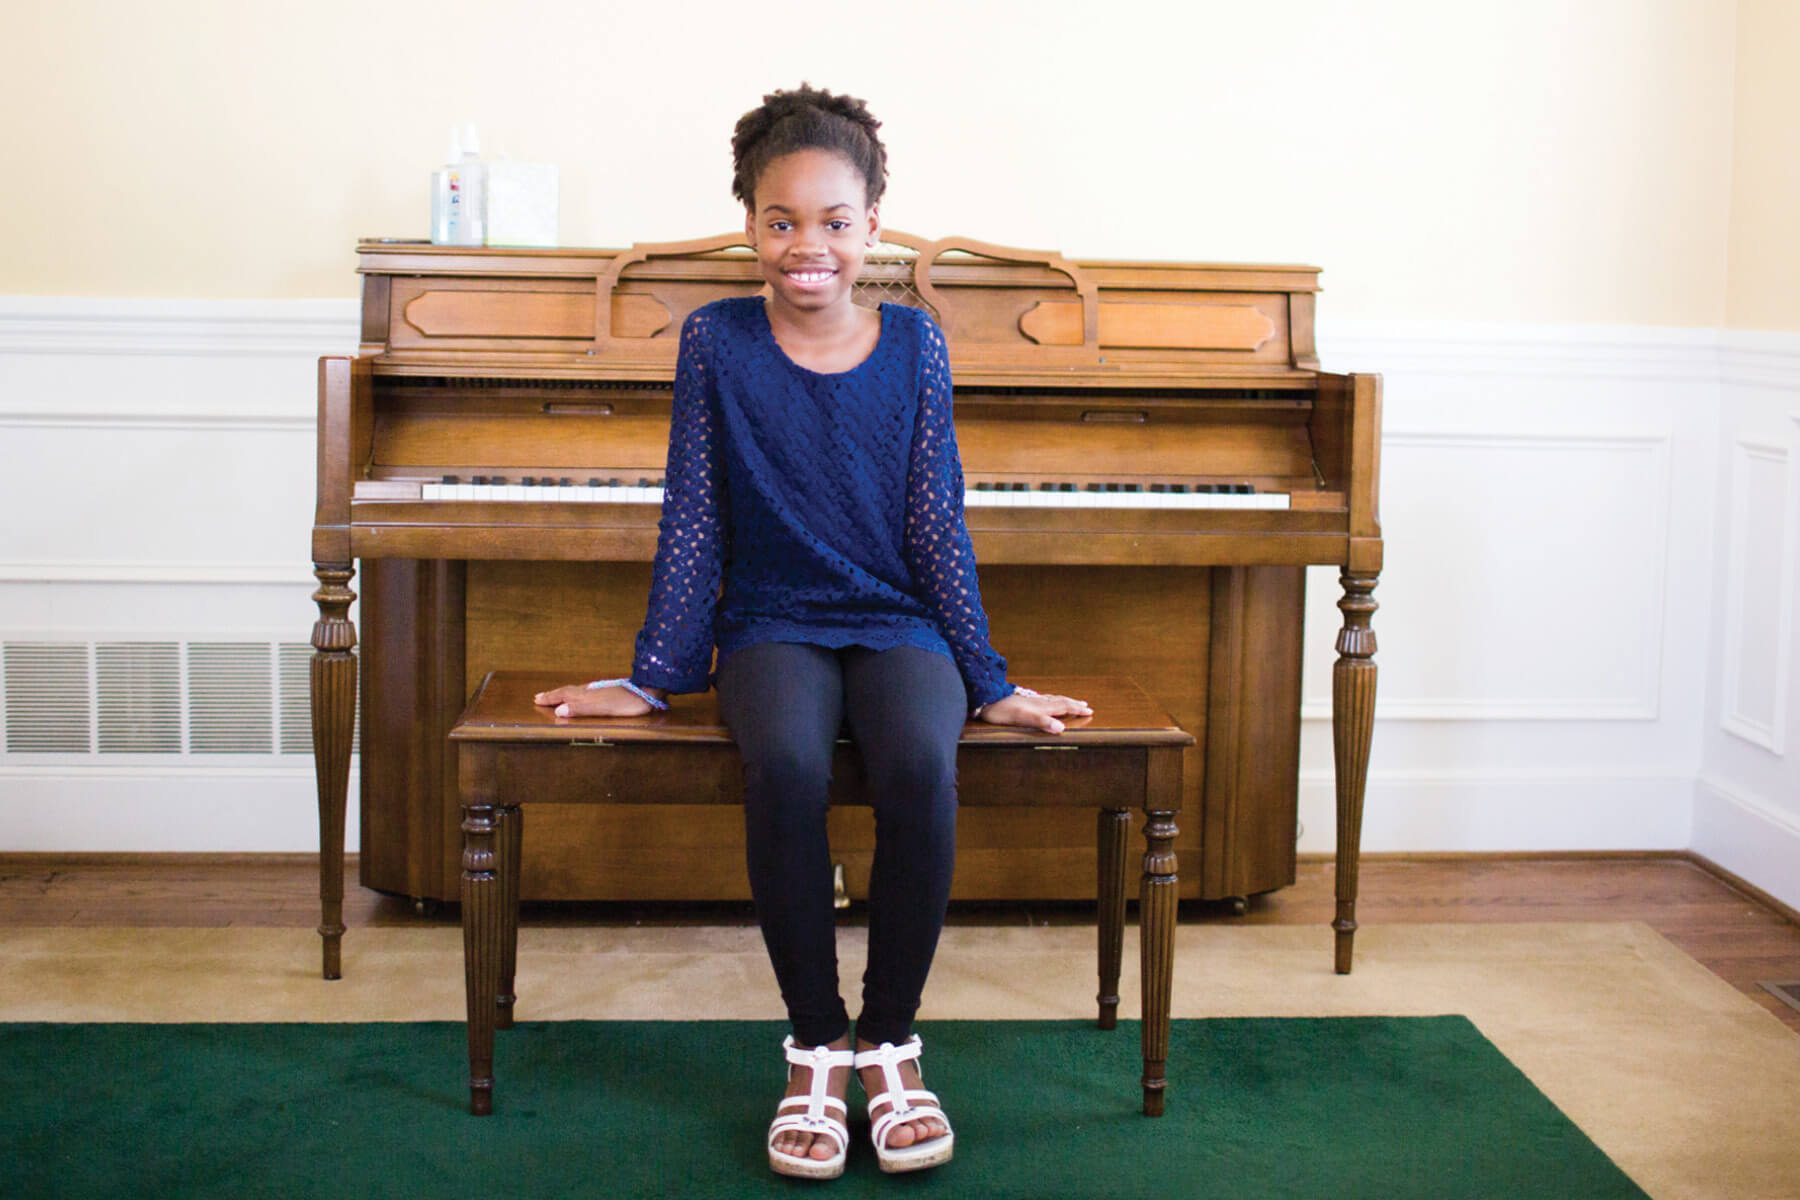 Student sitting on piano bench and smiling.